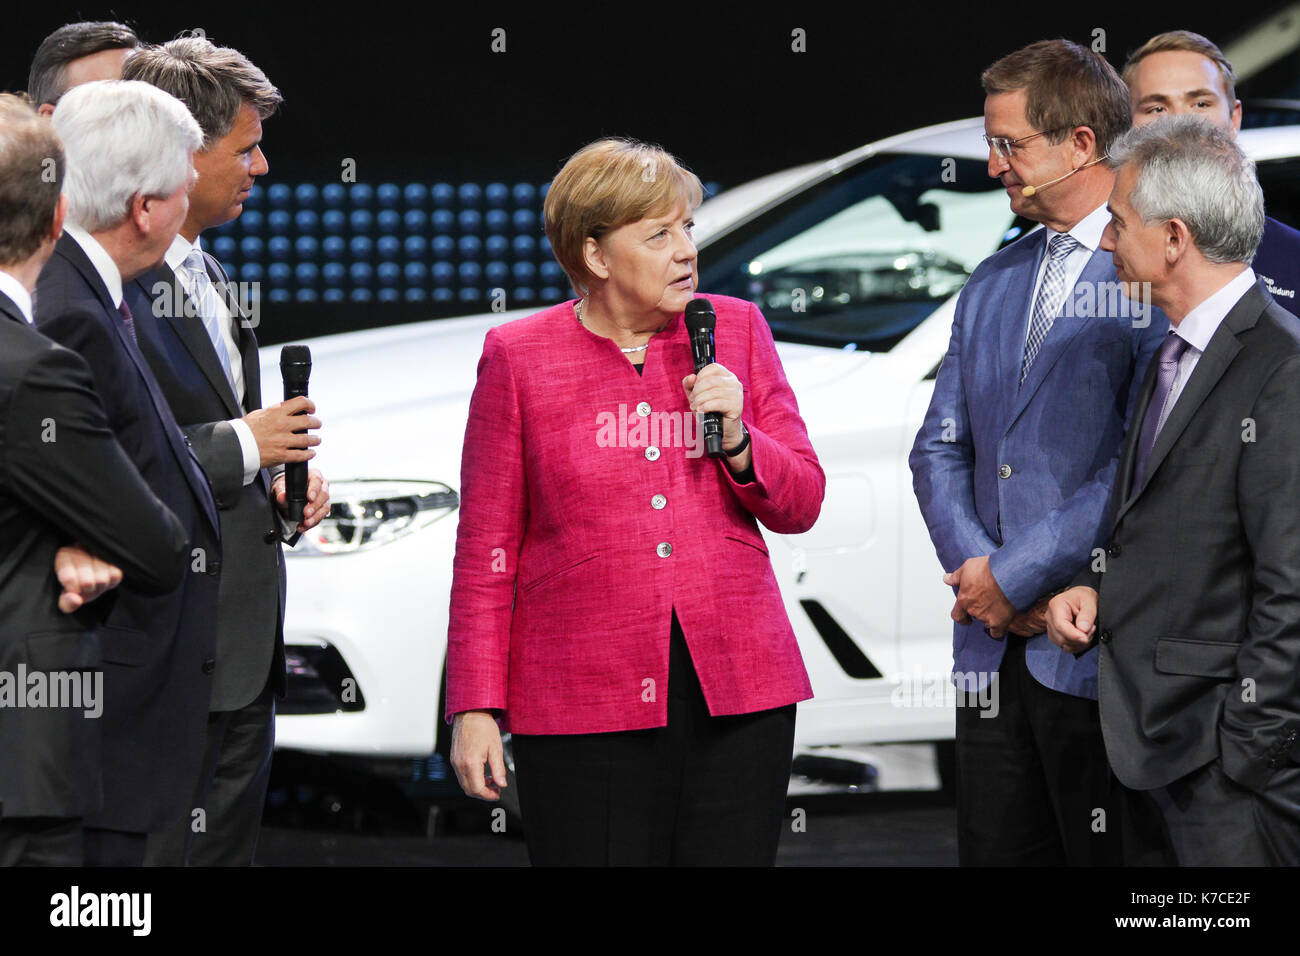 Frankfurt, Germany. 14th September, 2017. International Motor Show 2017 (IAA, Internationale Automobil-Ausstellung), opening walk with Angela Merkel, chancellor of Germany, here at BMW booth. Credit: Christian Lademann - Stock Image